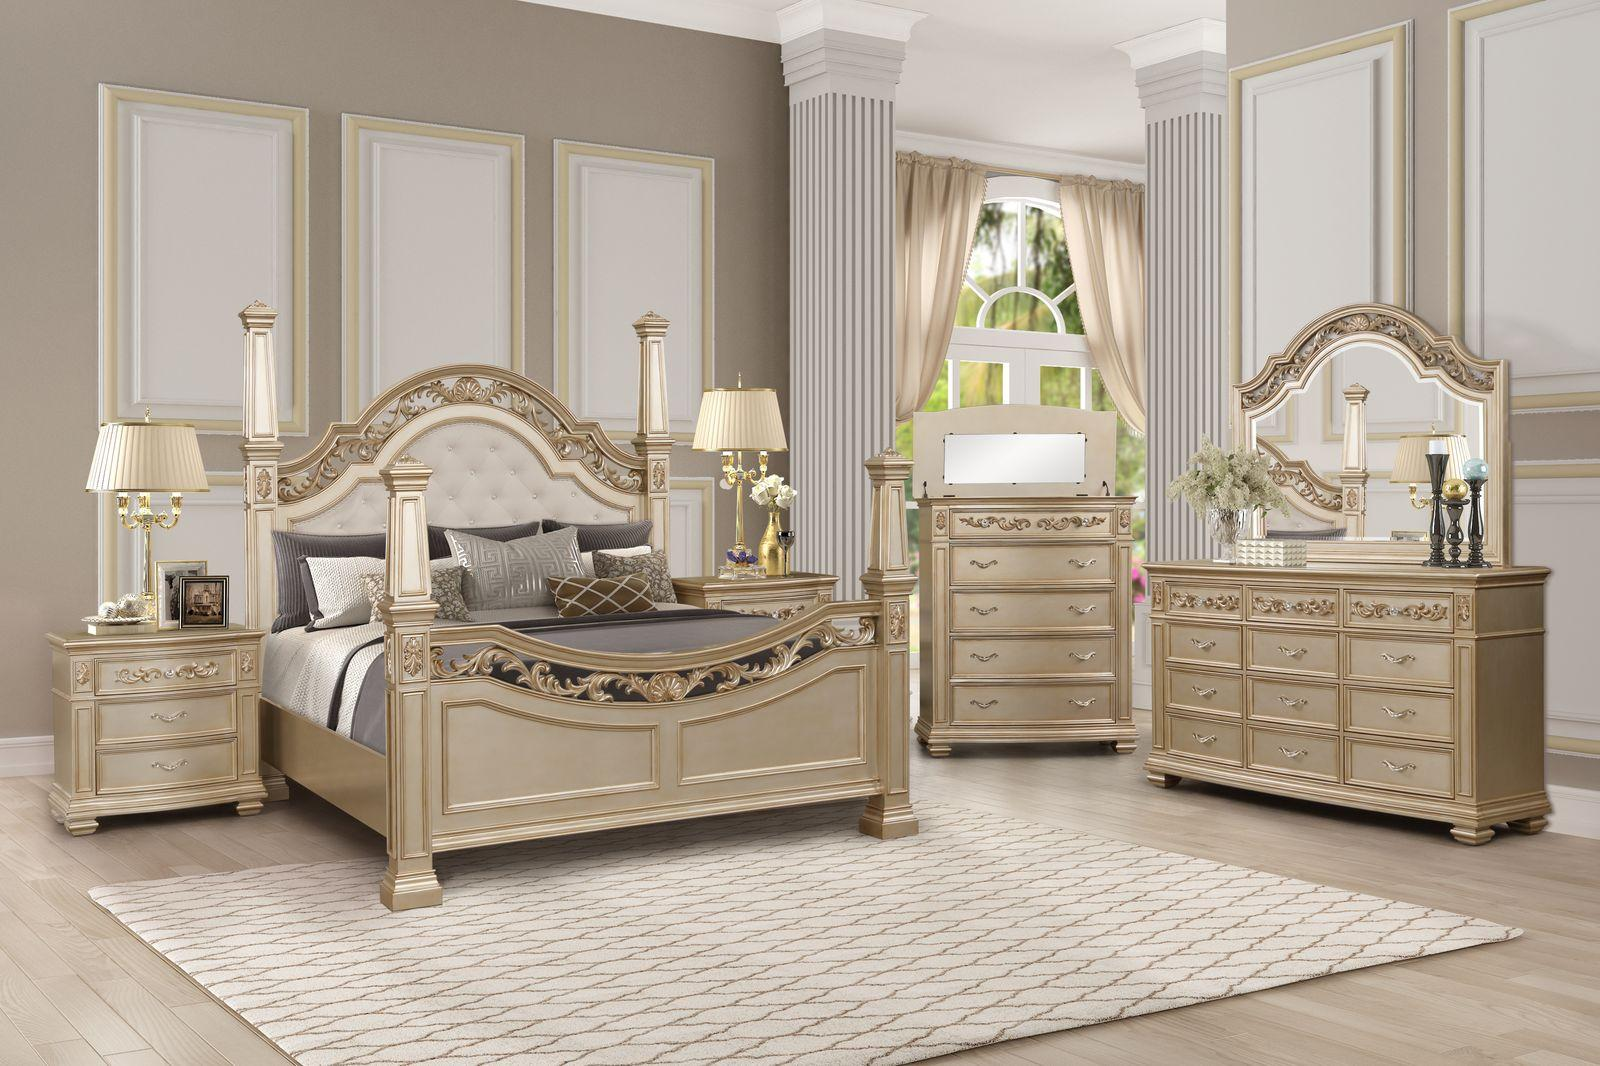 Traditional Gold  and Wood Queen Poster Bedroom Set 6 pcs Valentina by Cosmos Furniture